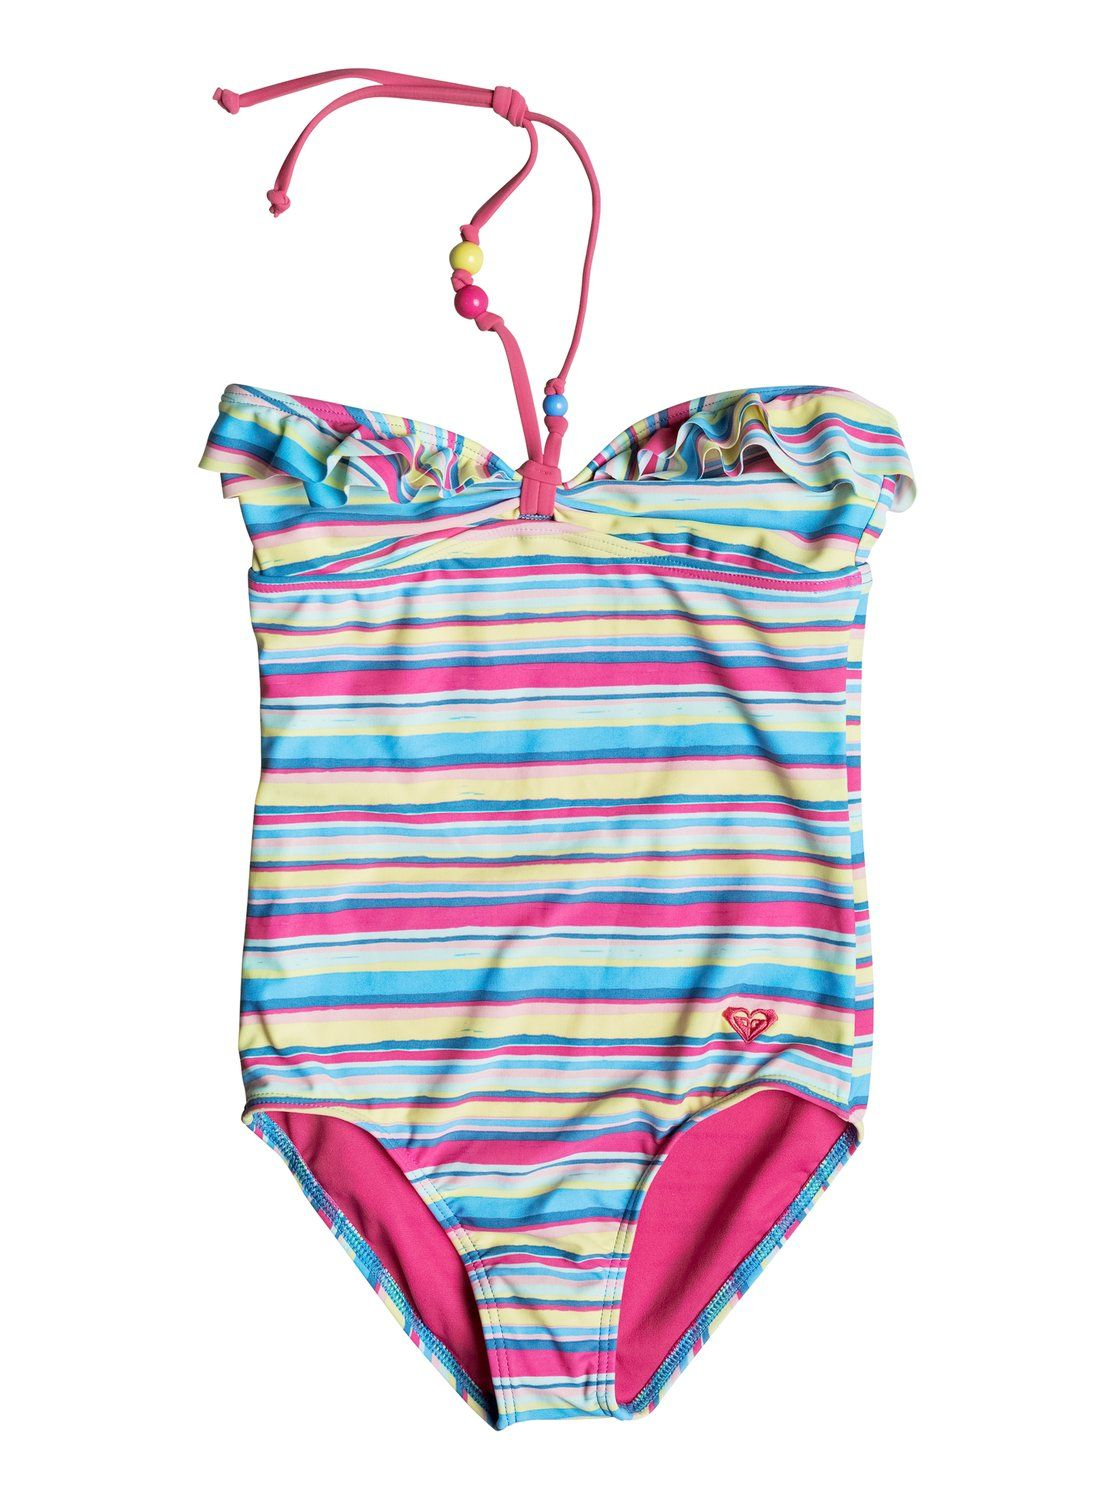 roxy, Baby Island Tiles One-Piece Swimsuit, SWIM ISLAND STRIPES (gck3)